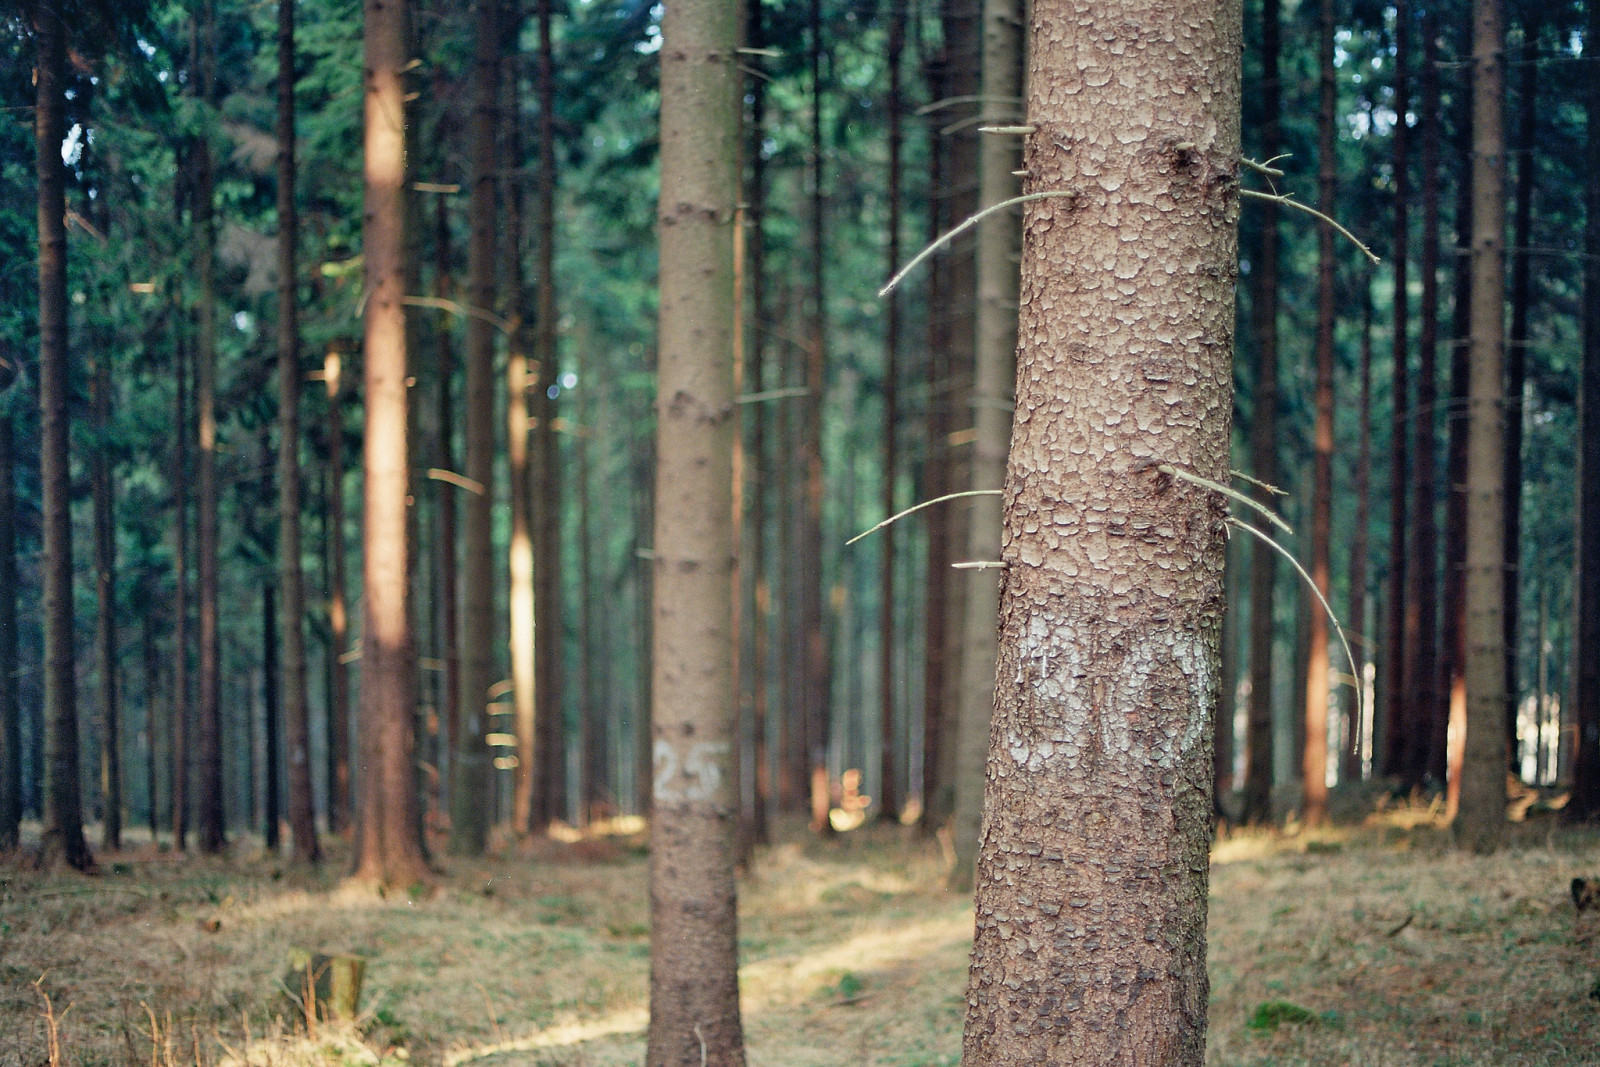 Numbers on trees by Masine